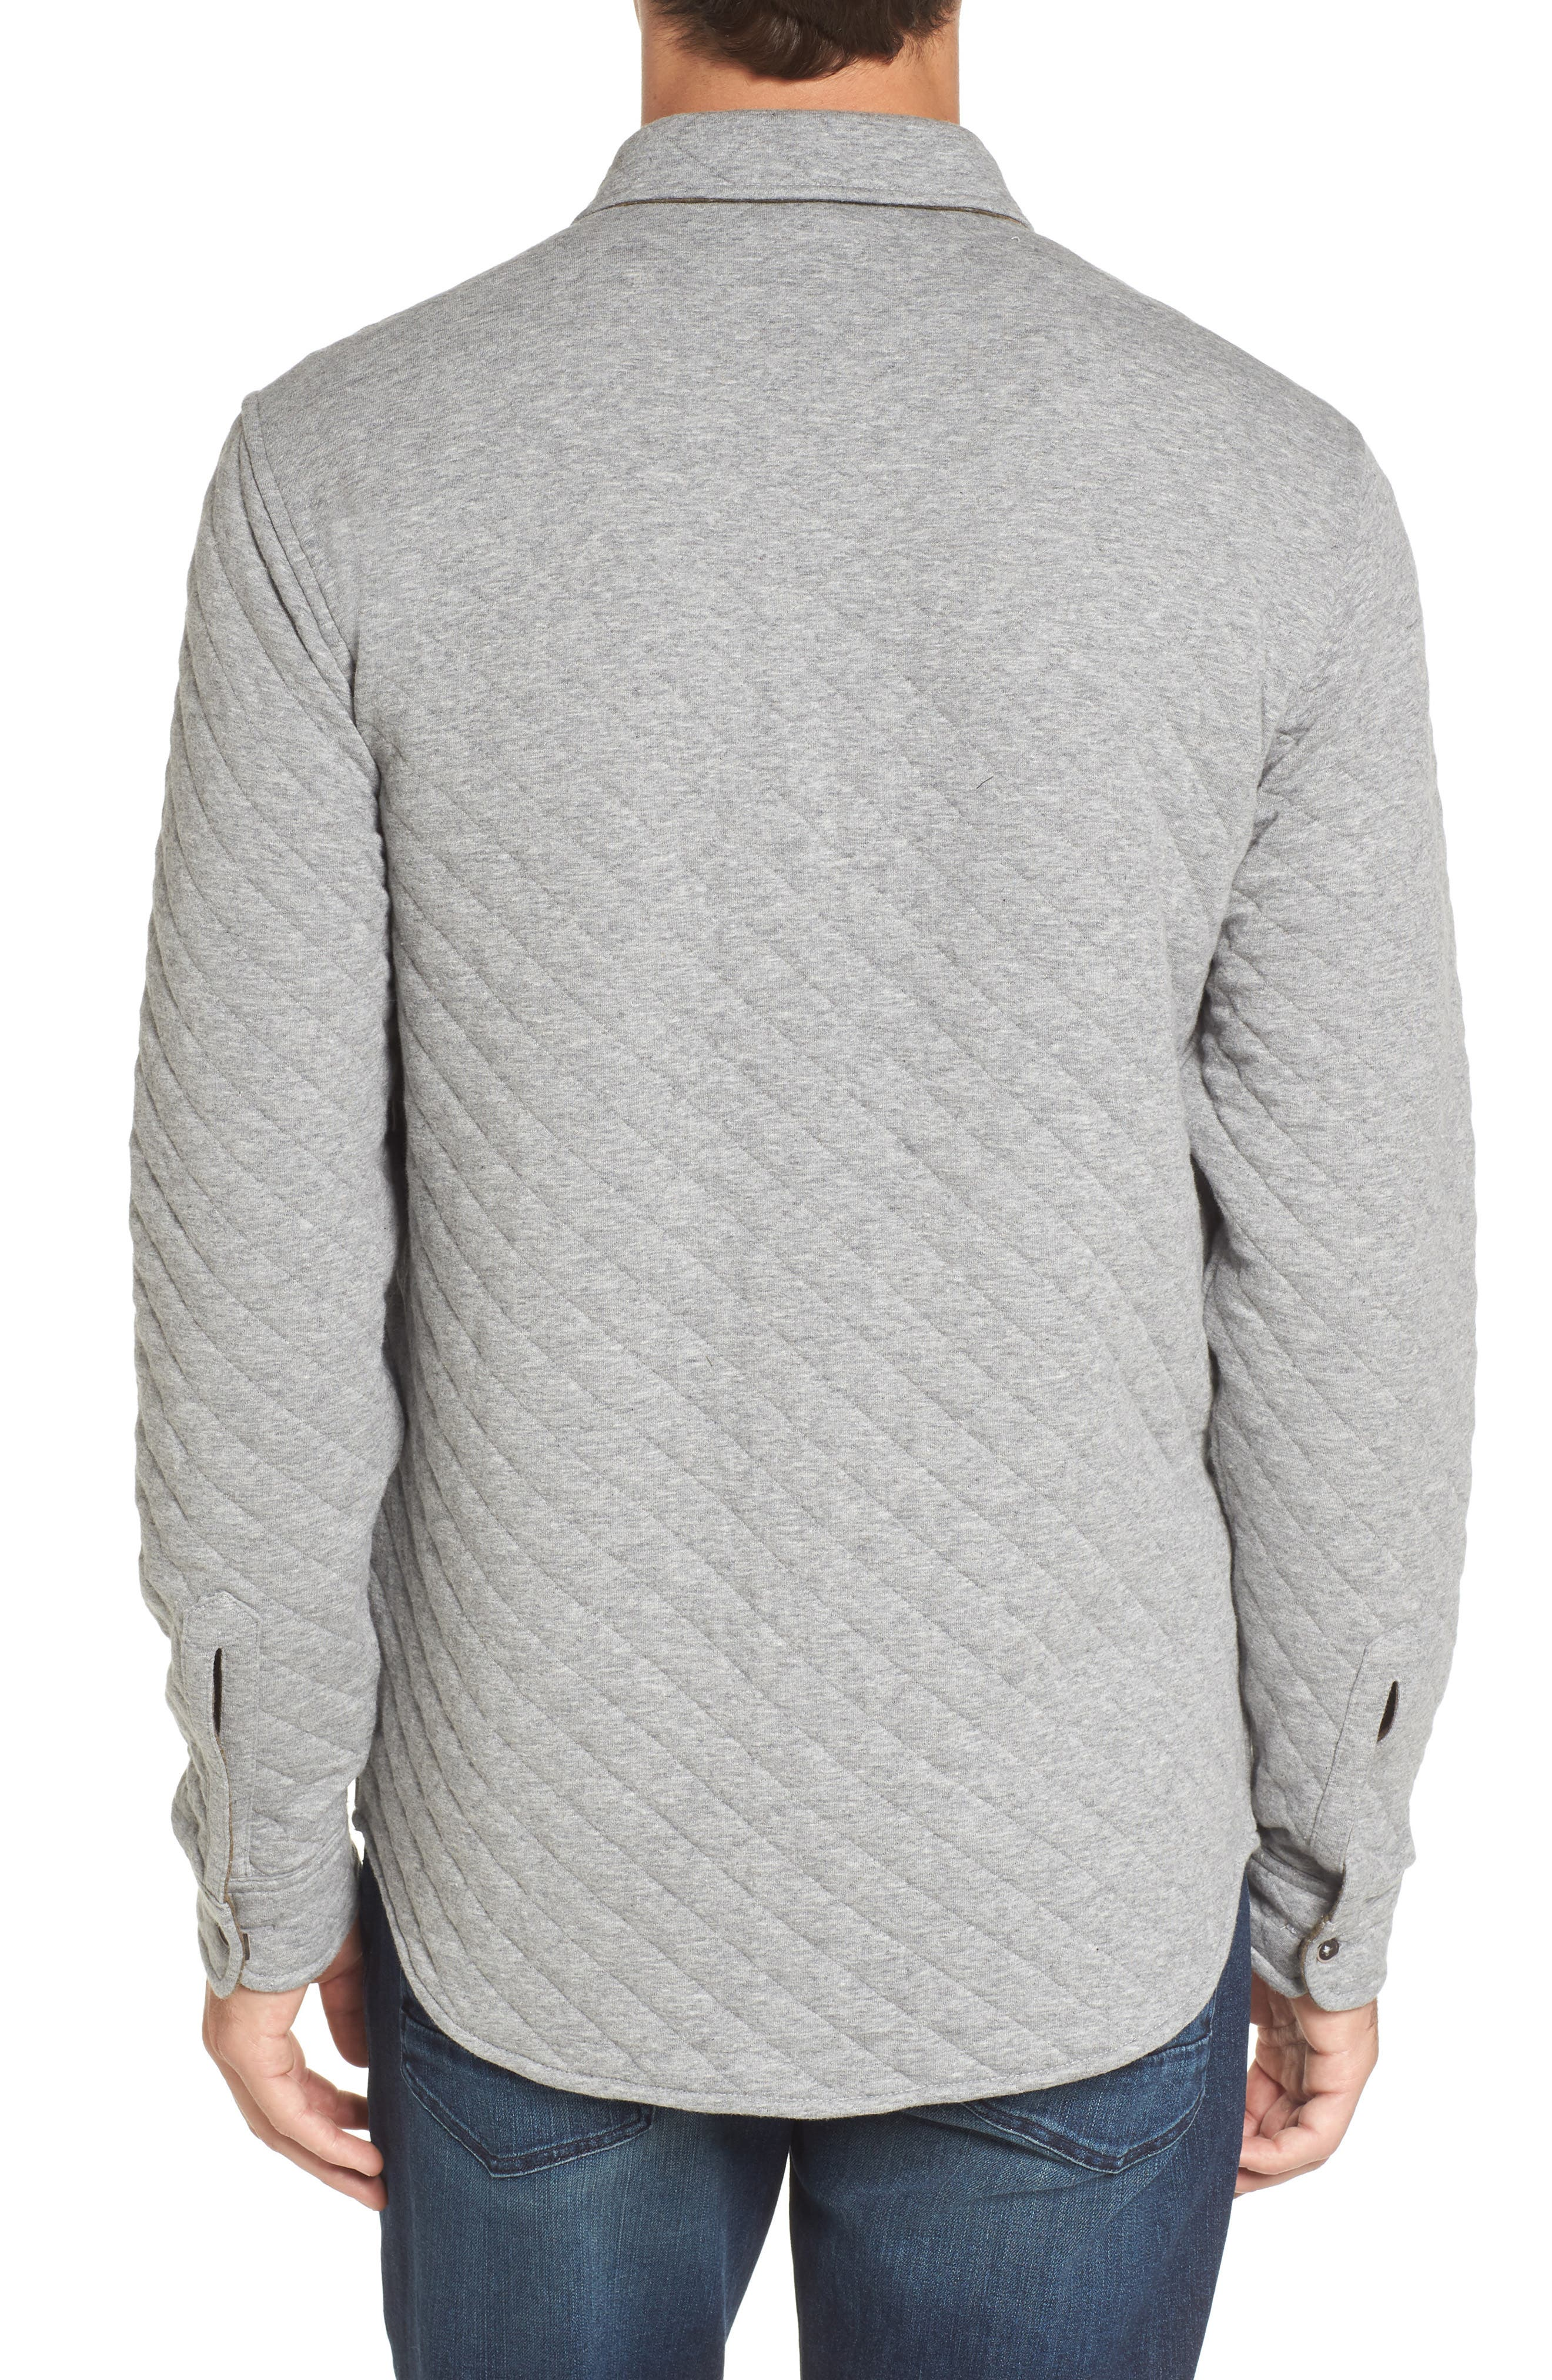 Reversible Double-Face Quilted Shirt,                             Alternate thumbnail 2, color,                             Med Grey Htr/ Army Htr Quilted